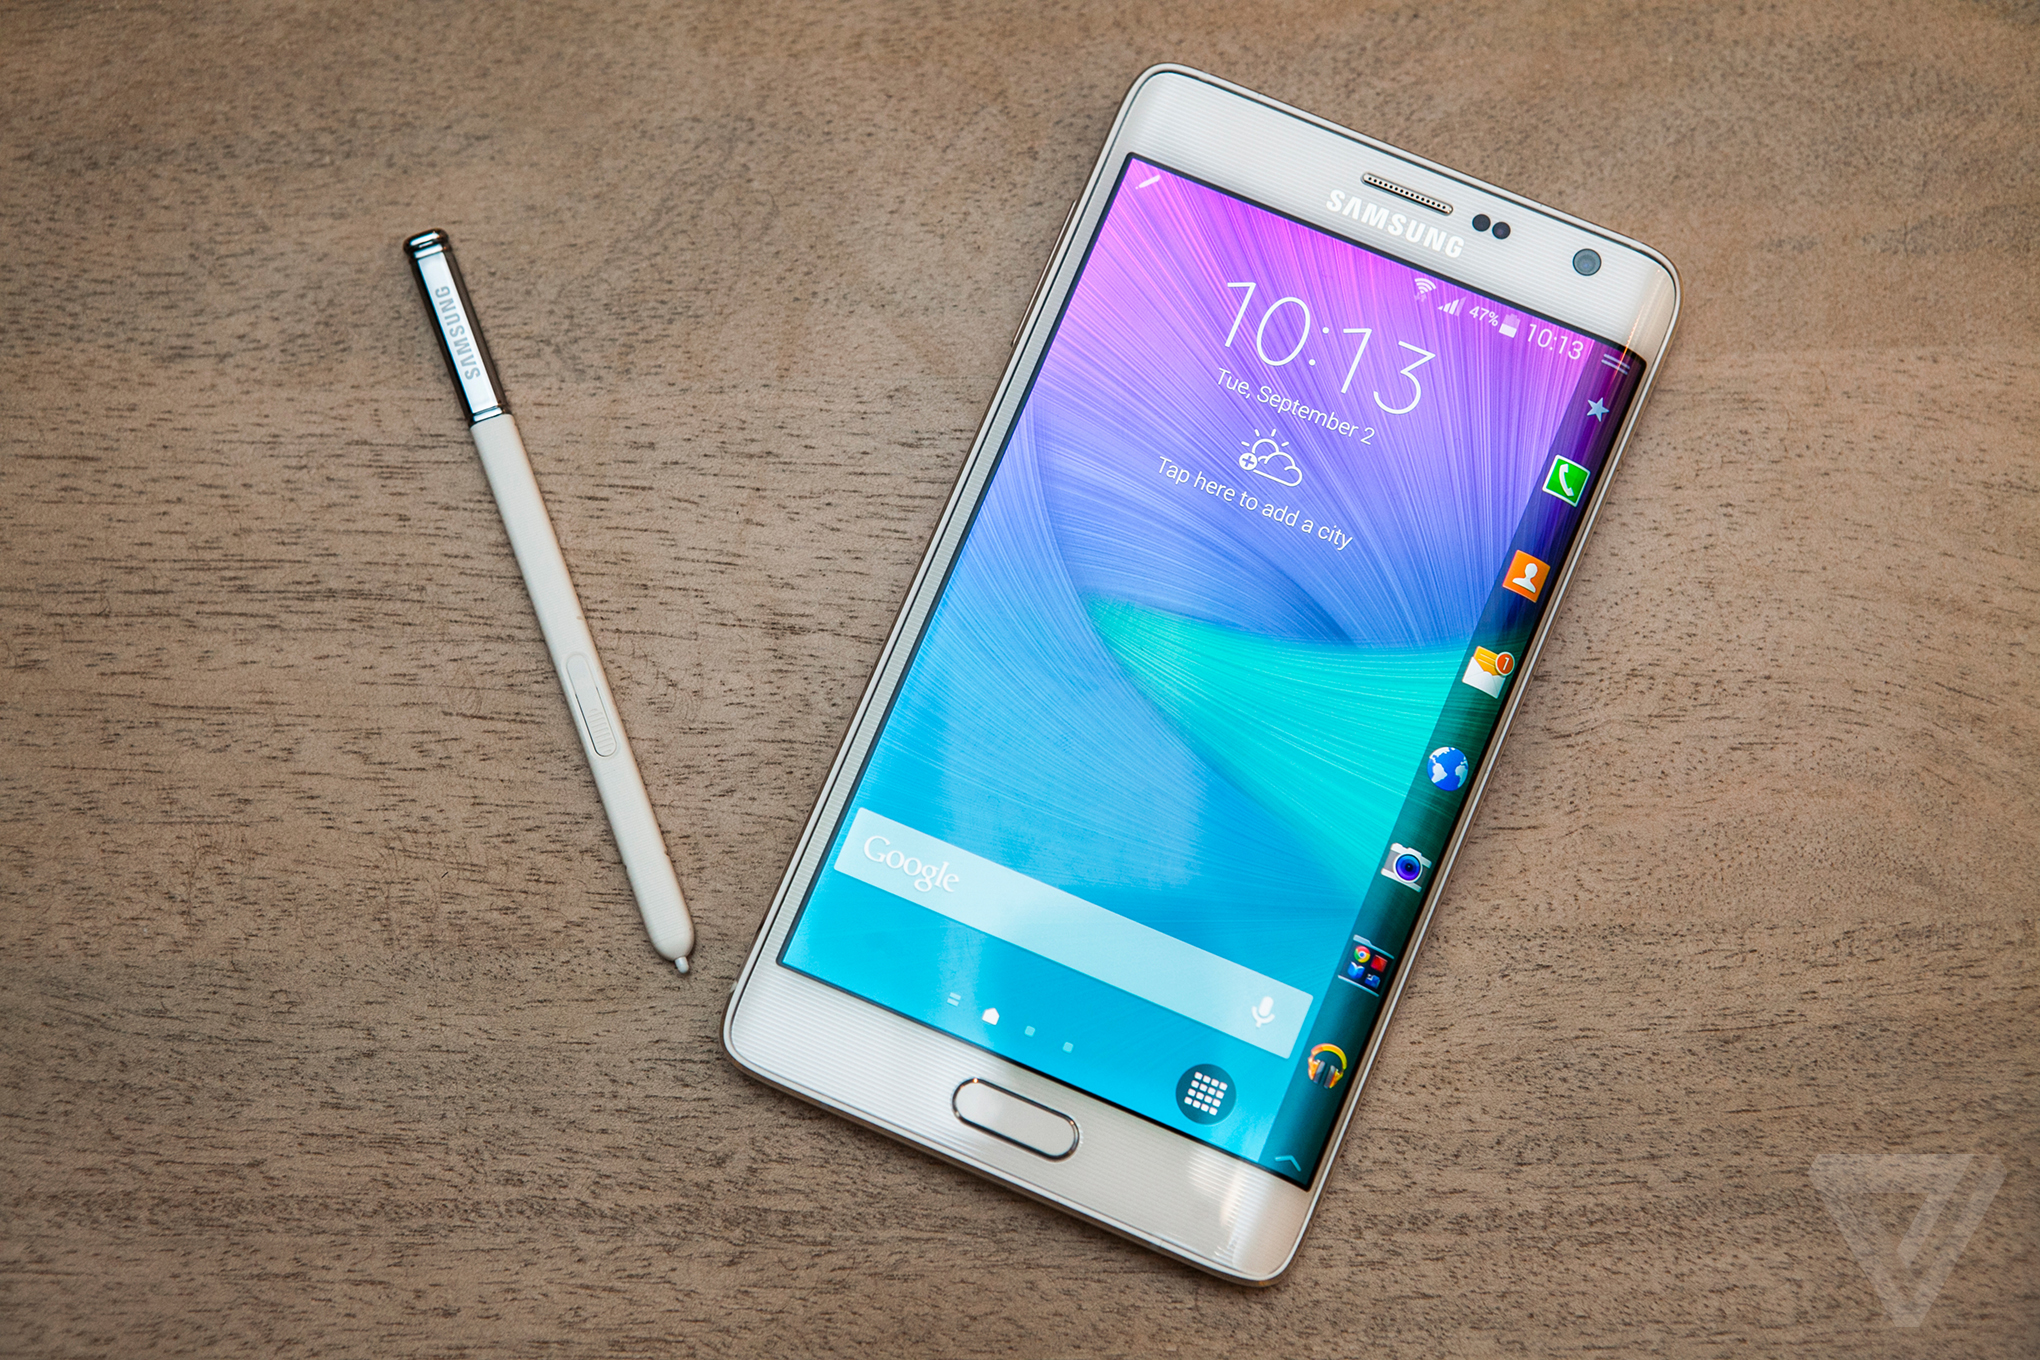 The Galaxy Note Edge is a flagship phone with an entirely